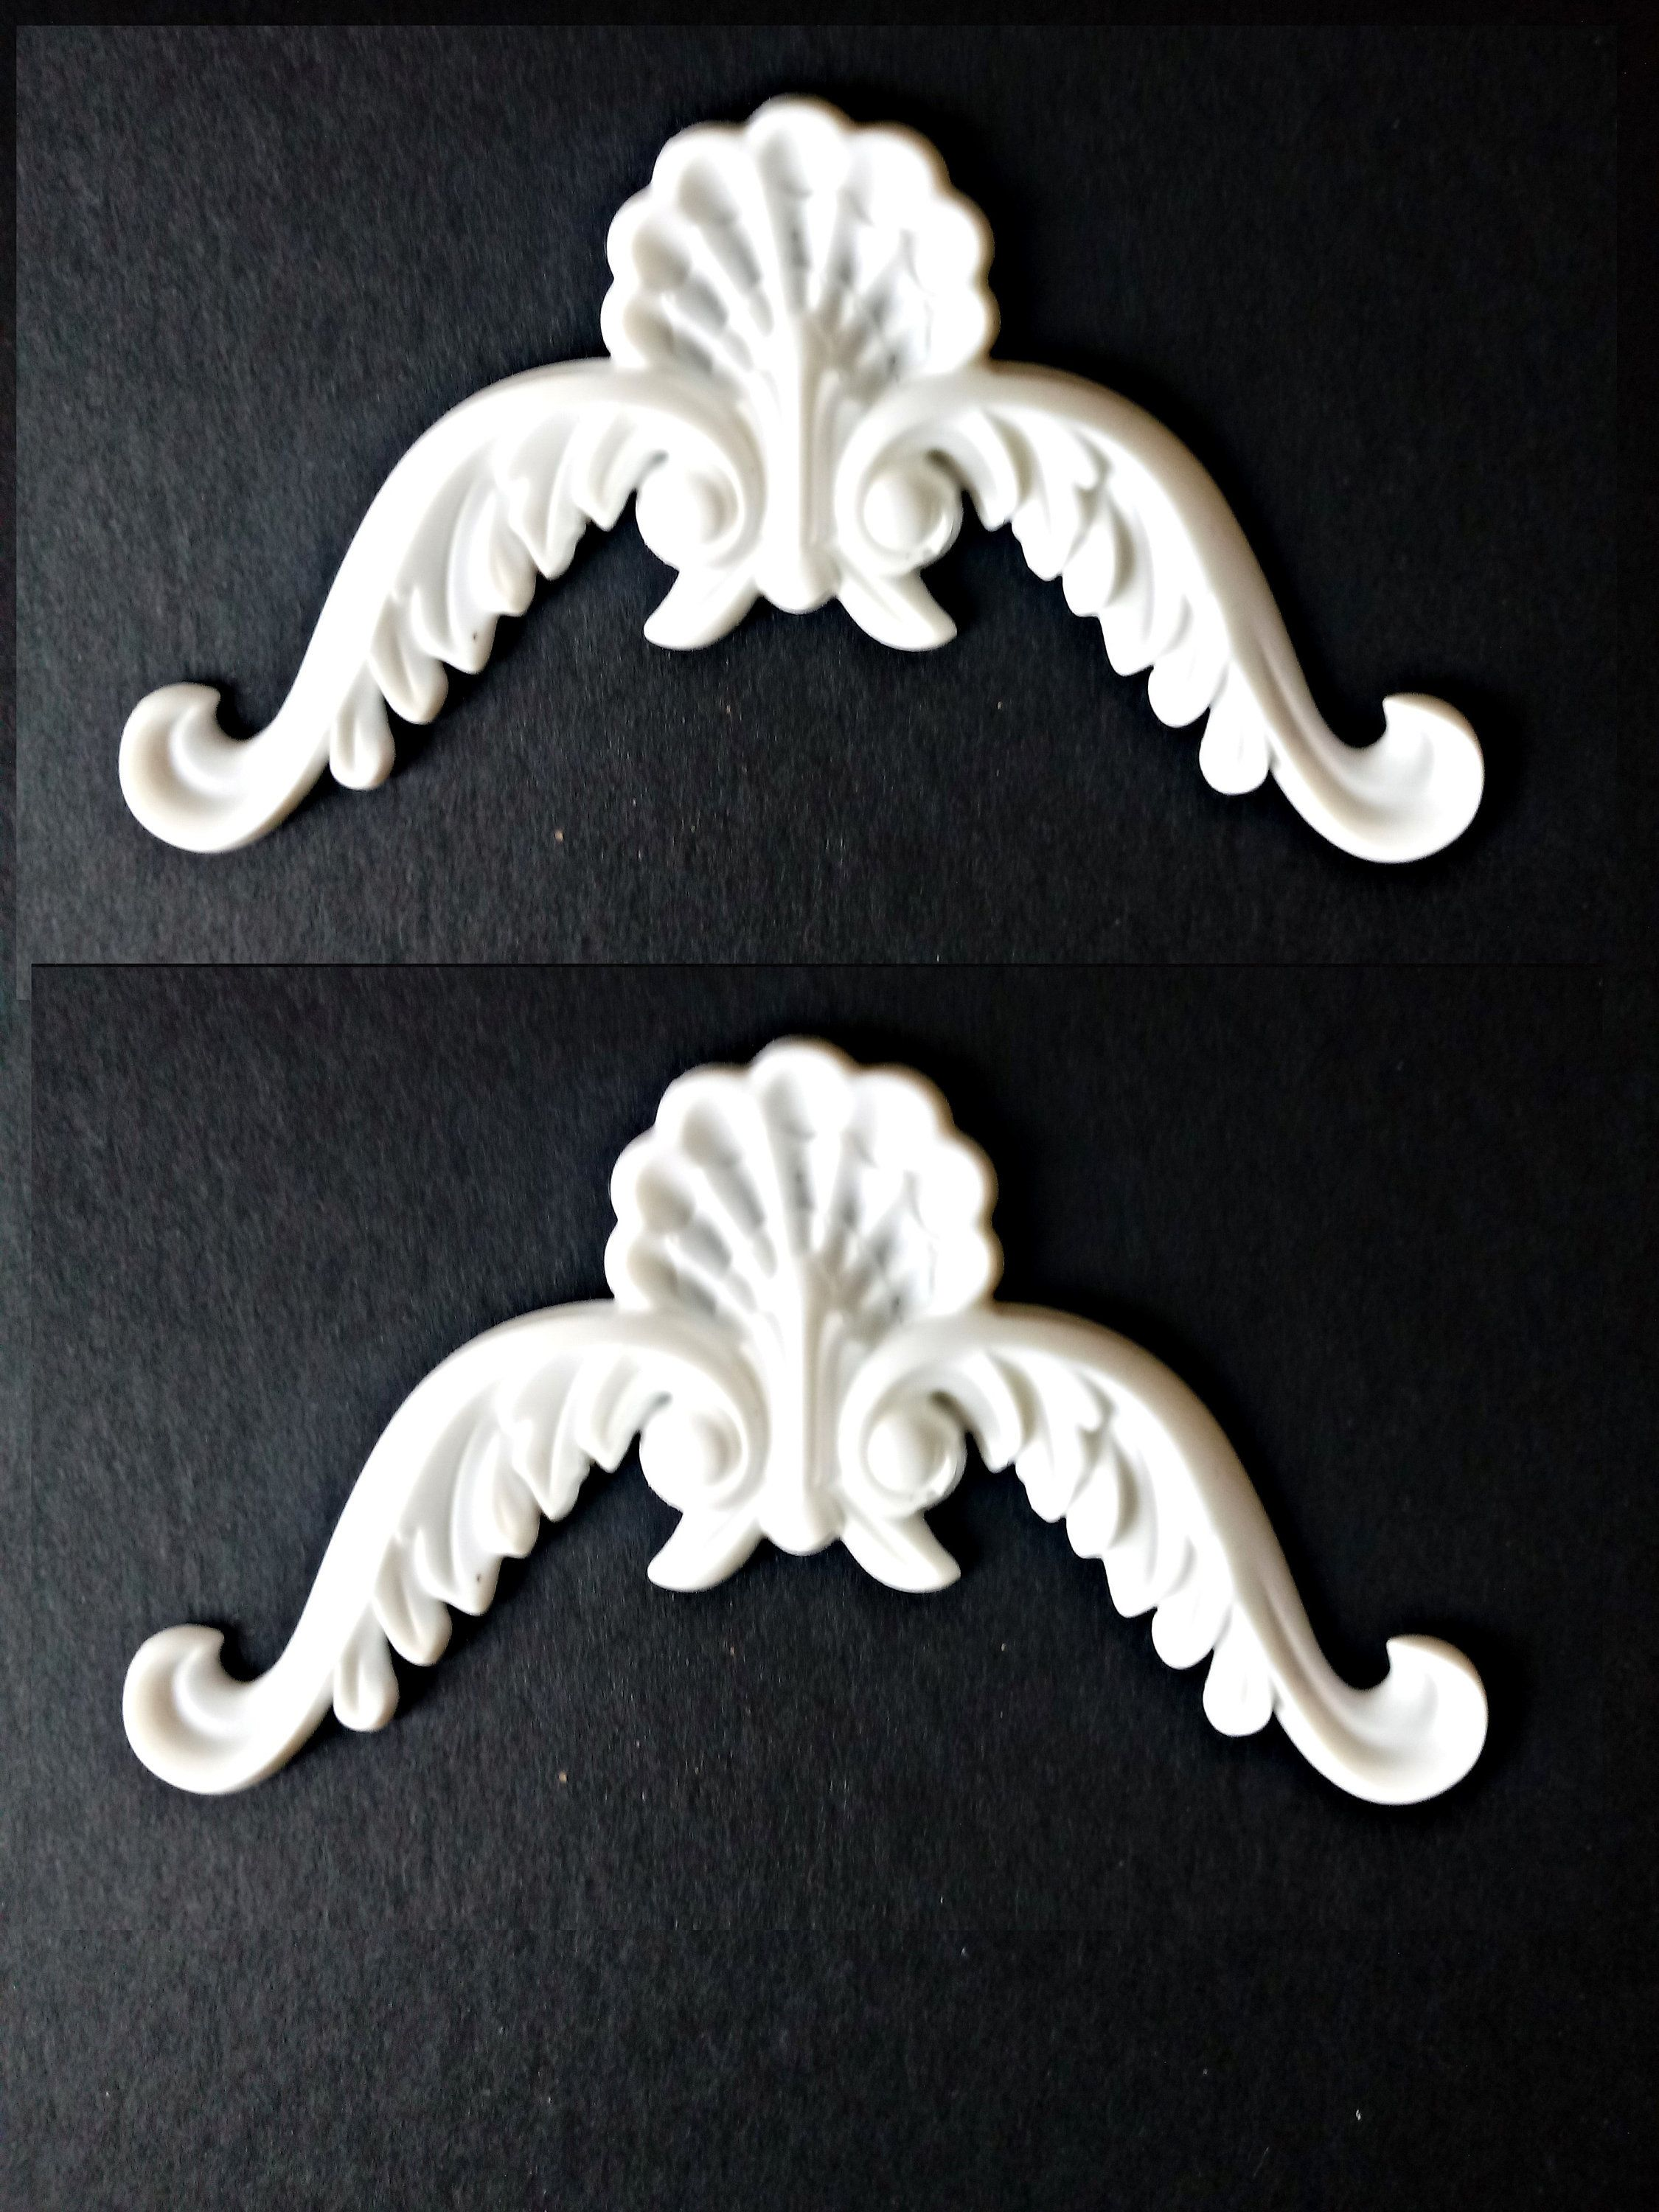 Furniture Appliques Furniture Moulding Shabby Chic Appliques Ornate Appliques Corner Appliques In 2020 Furniture Appliques Shabby Chic Jewellery Box Shabby Chic